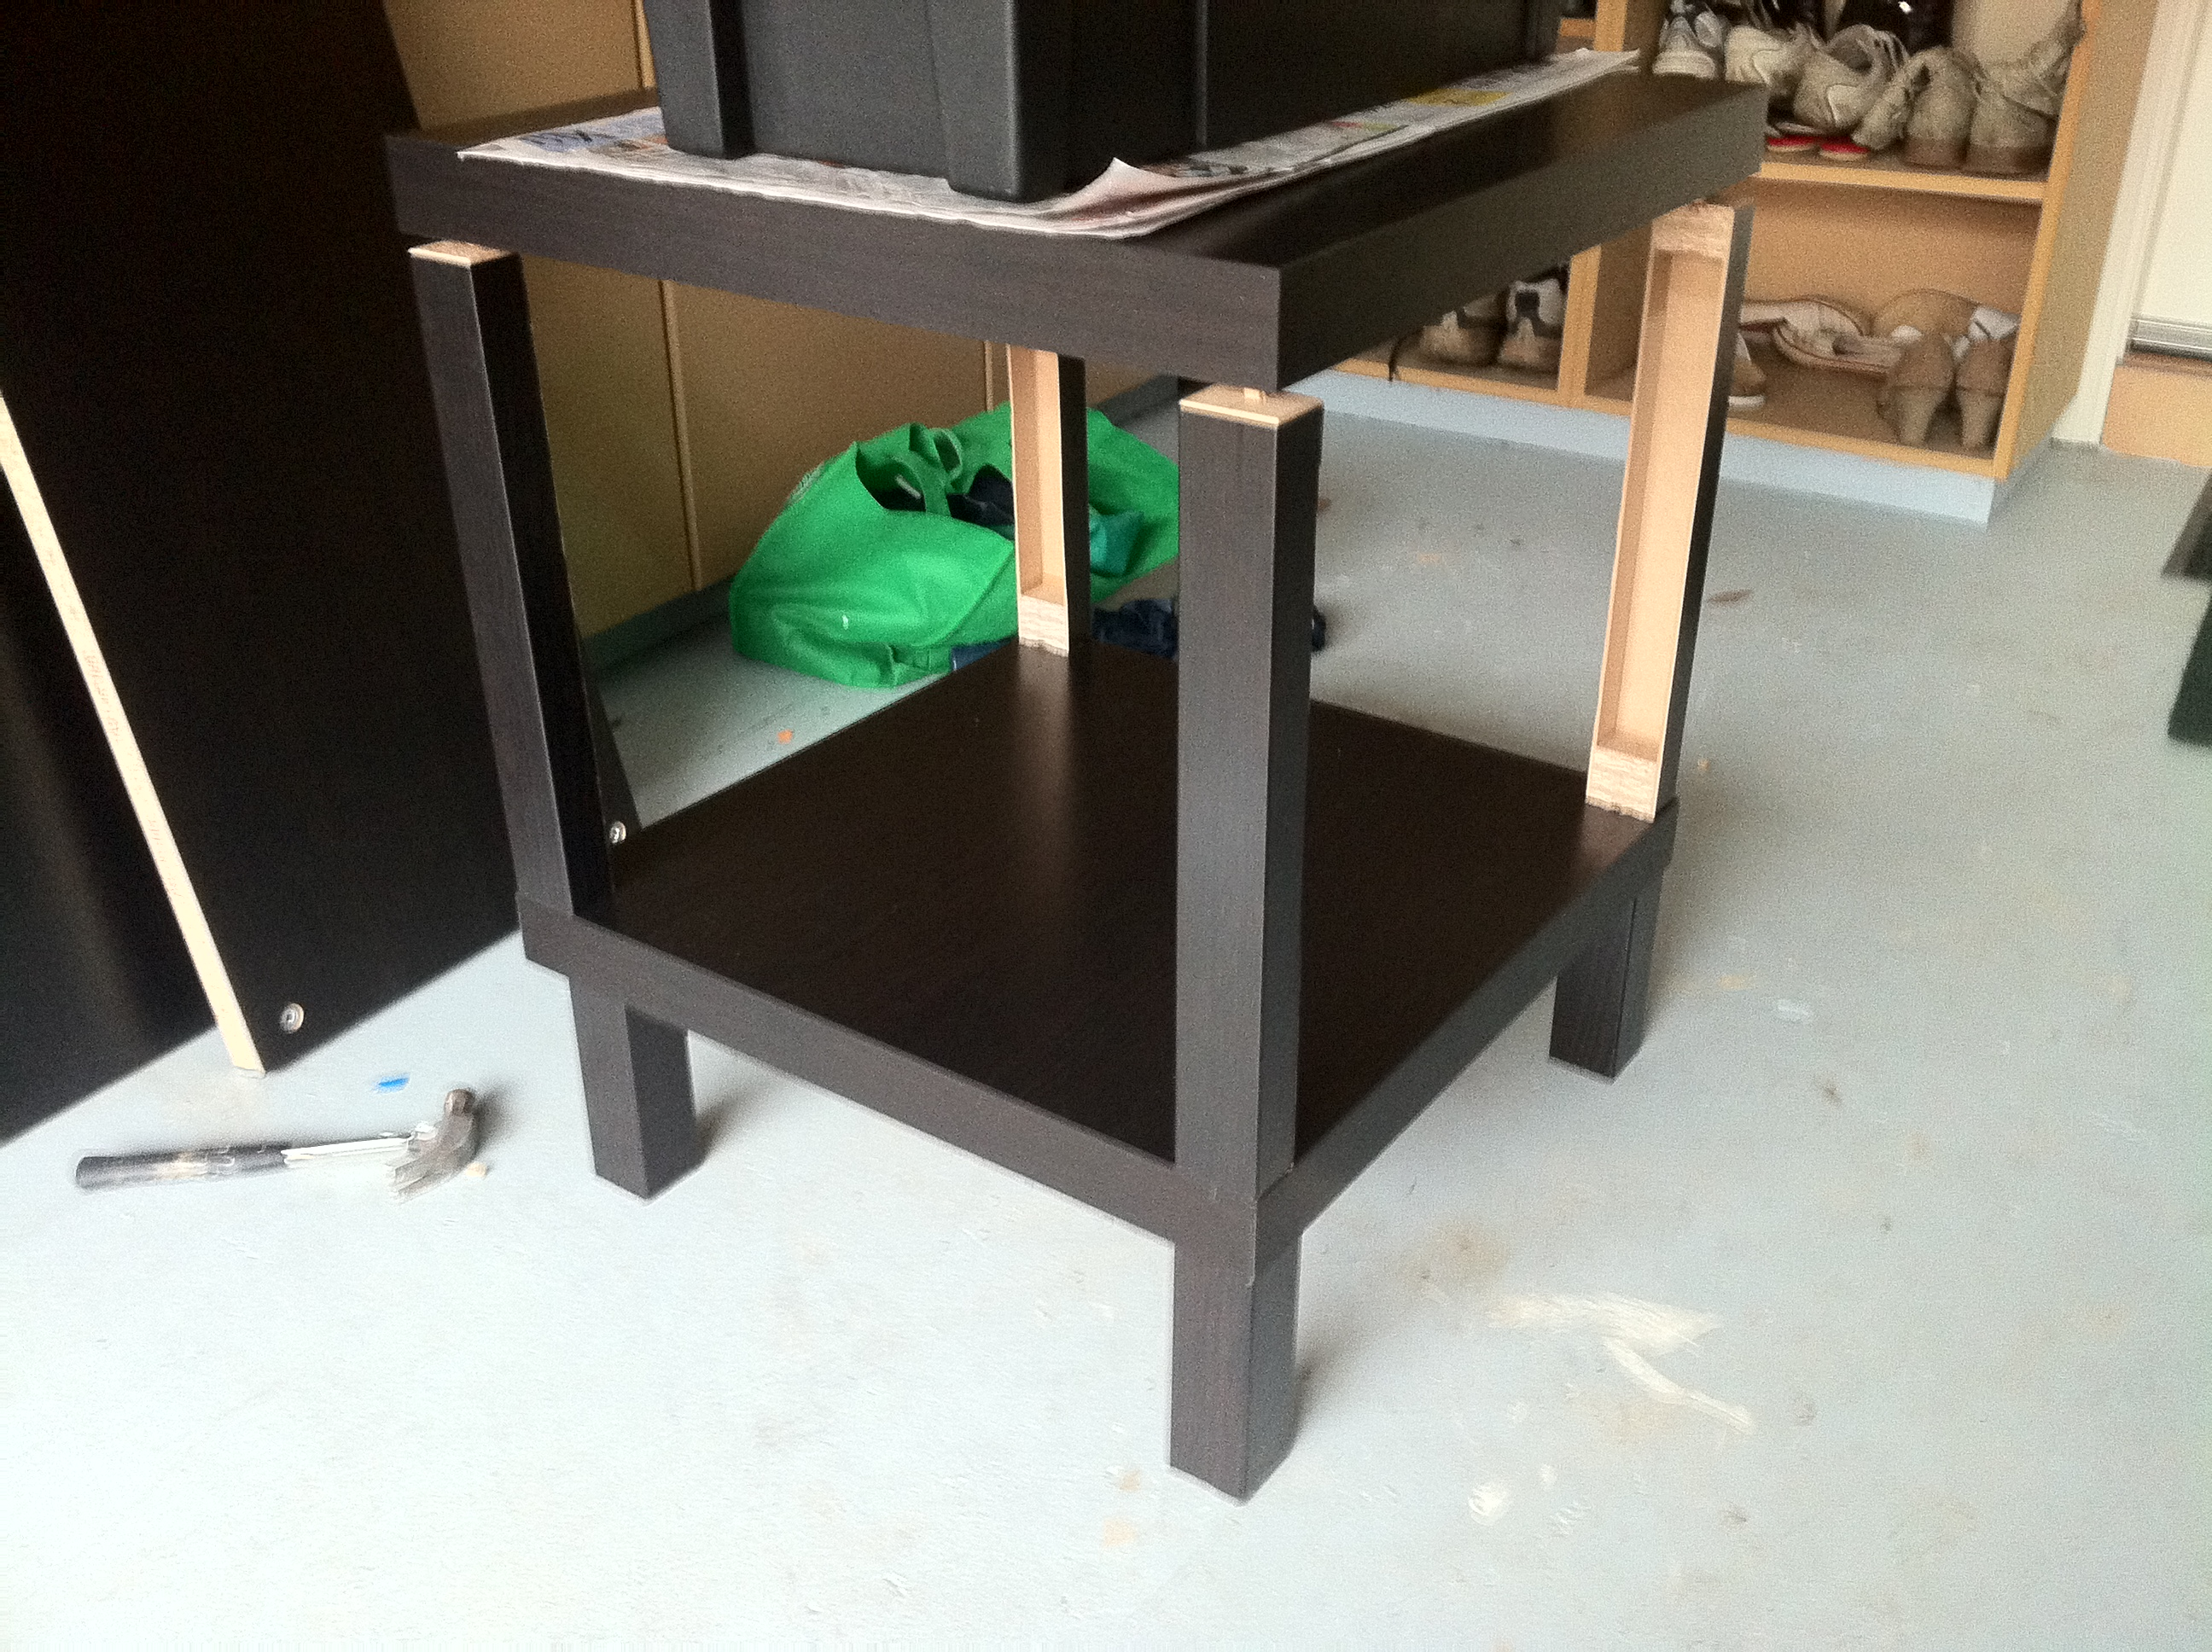 Lack Home Theatre Cabinet Part 1 Born Bred With Technology